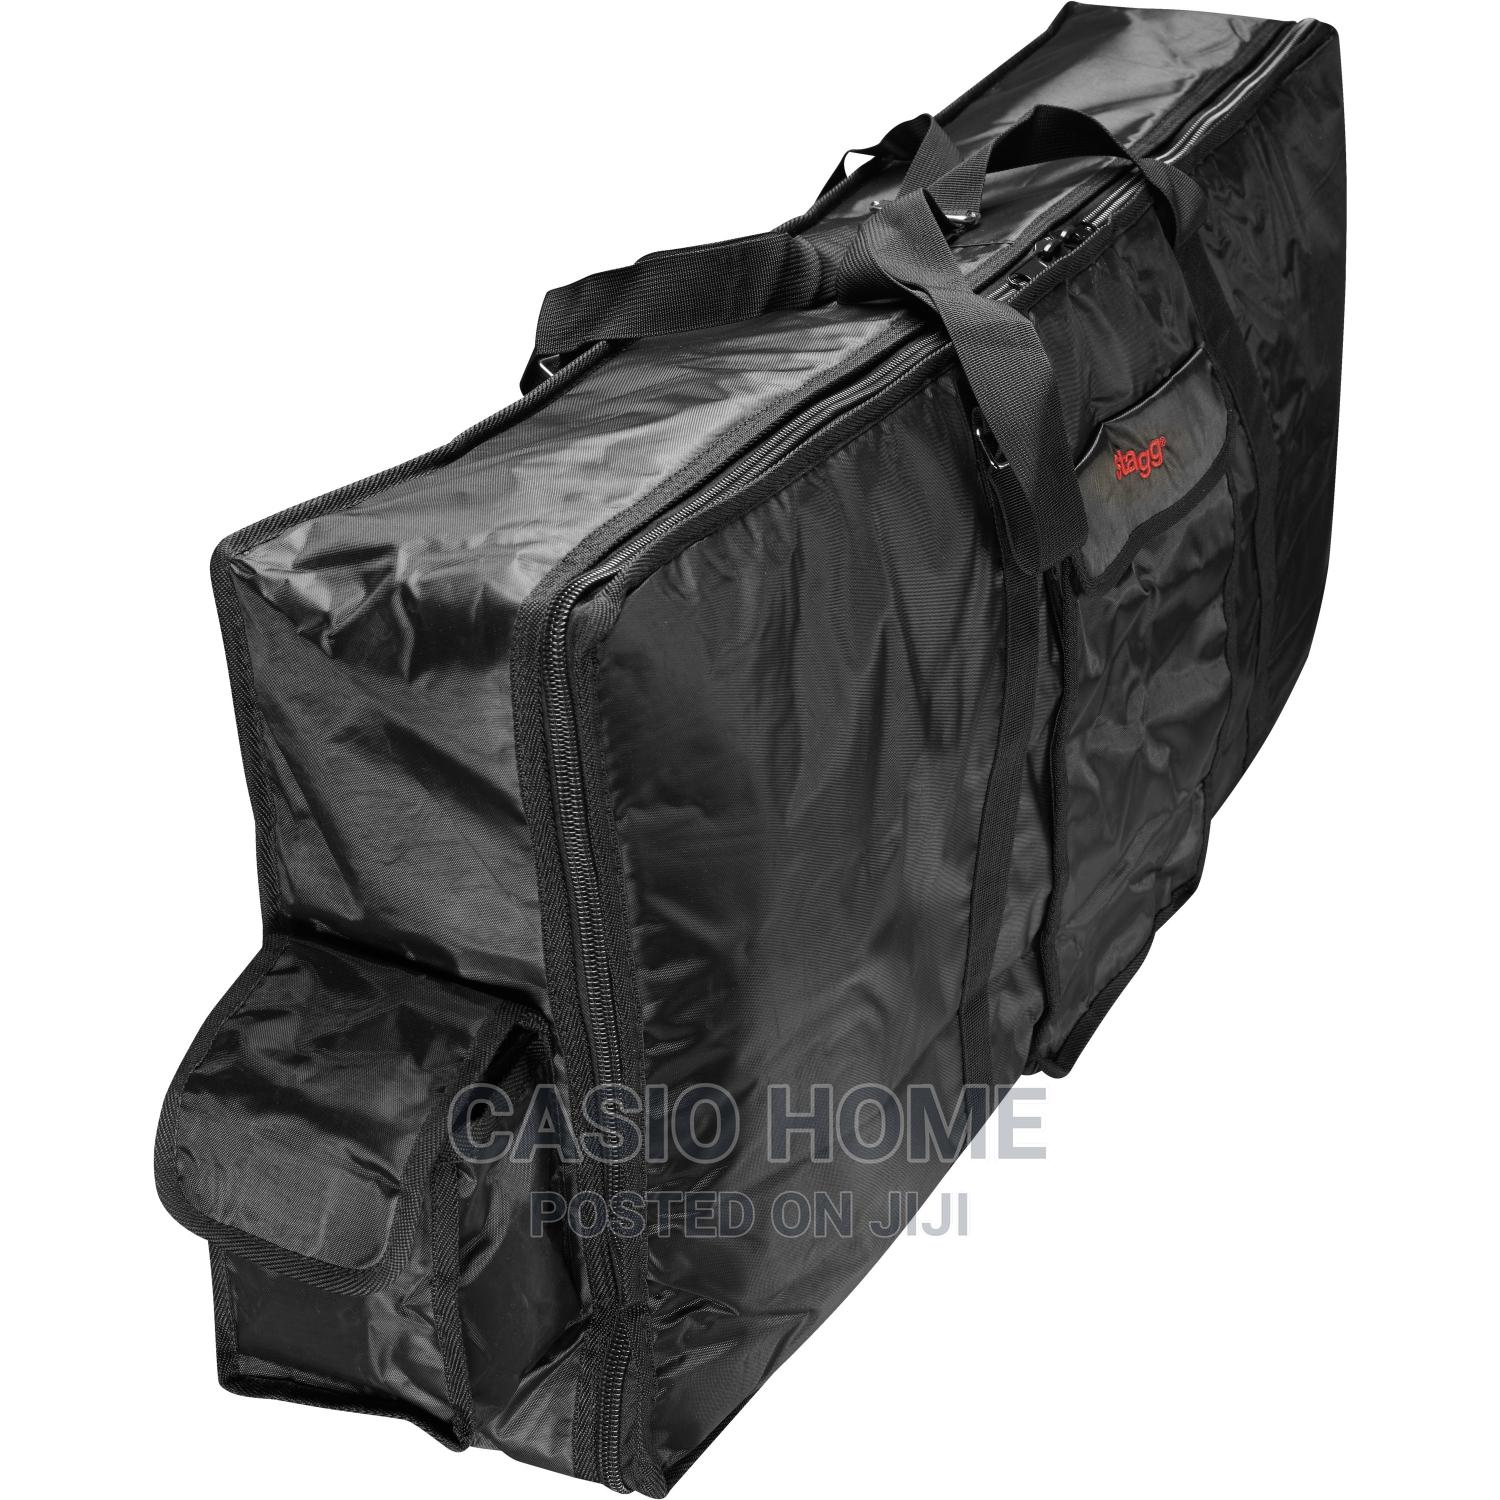 High Performance UK New Double Padded Piano Keyboard Bags   Musical Instruments & Gear for sale in Ipaja, Lagos State, Nigeria